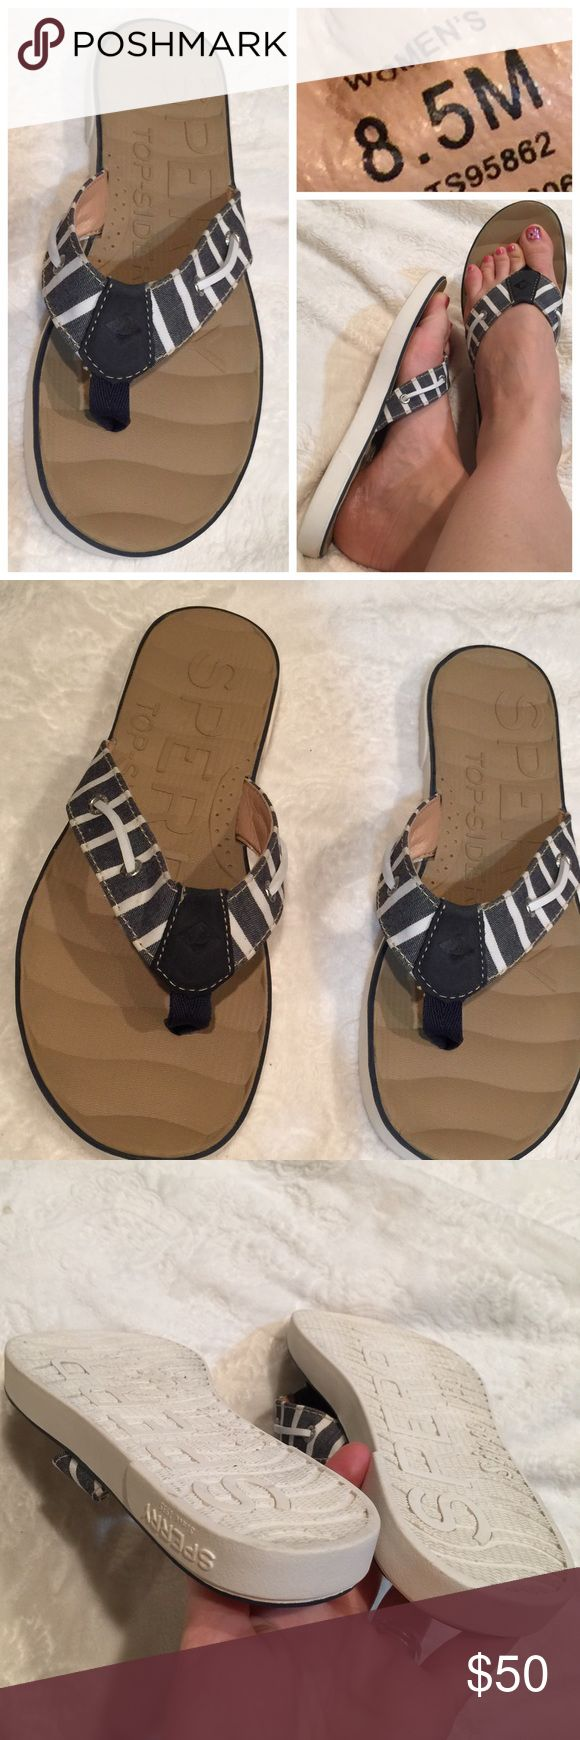 Sperry Top Sider nautical sandals Like new condition. 🚫 No Trades  🚭 Smoke Free Home 📦 Next Day Shipping 🕉 Namaste 🙏 Sperry Top-Sider Shoes Sandals